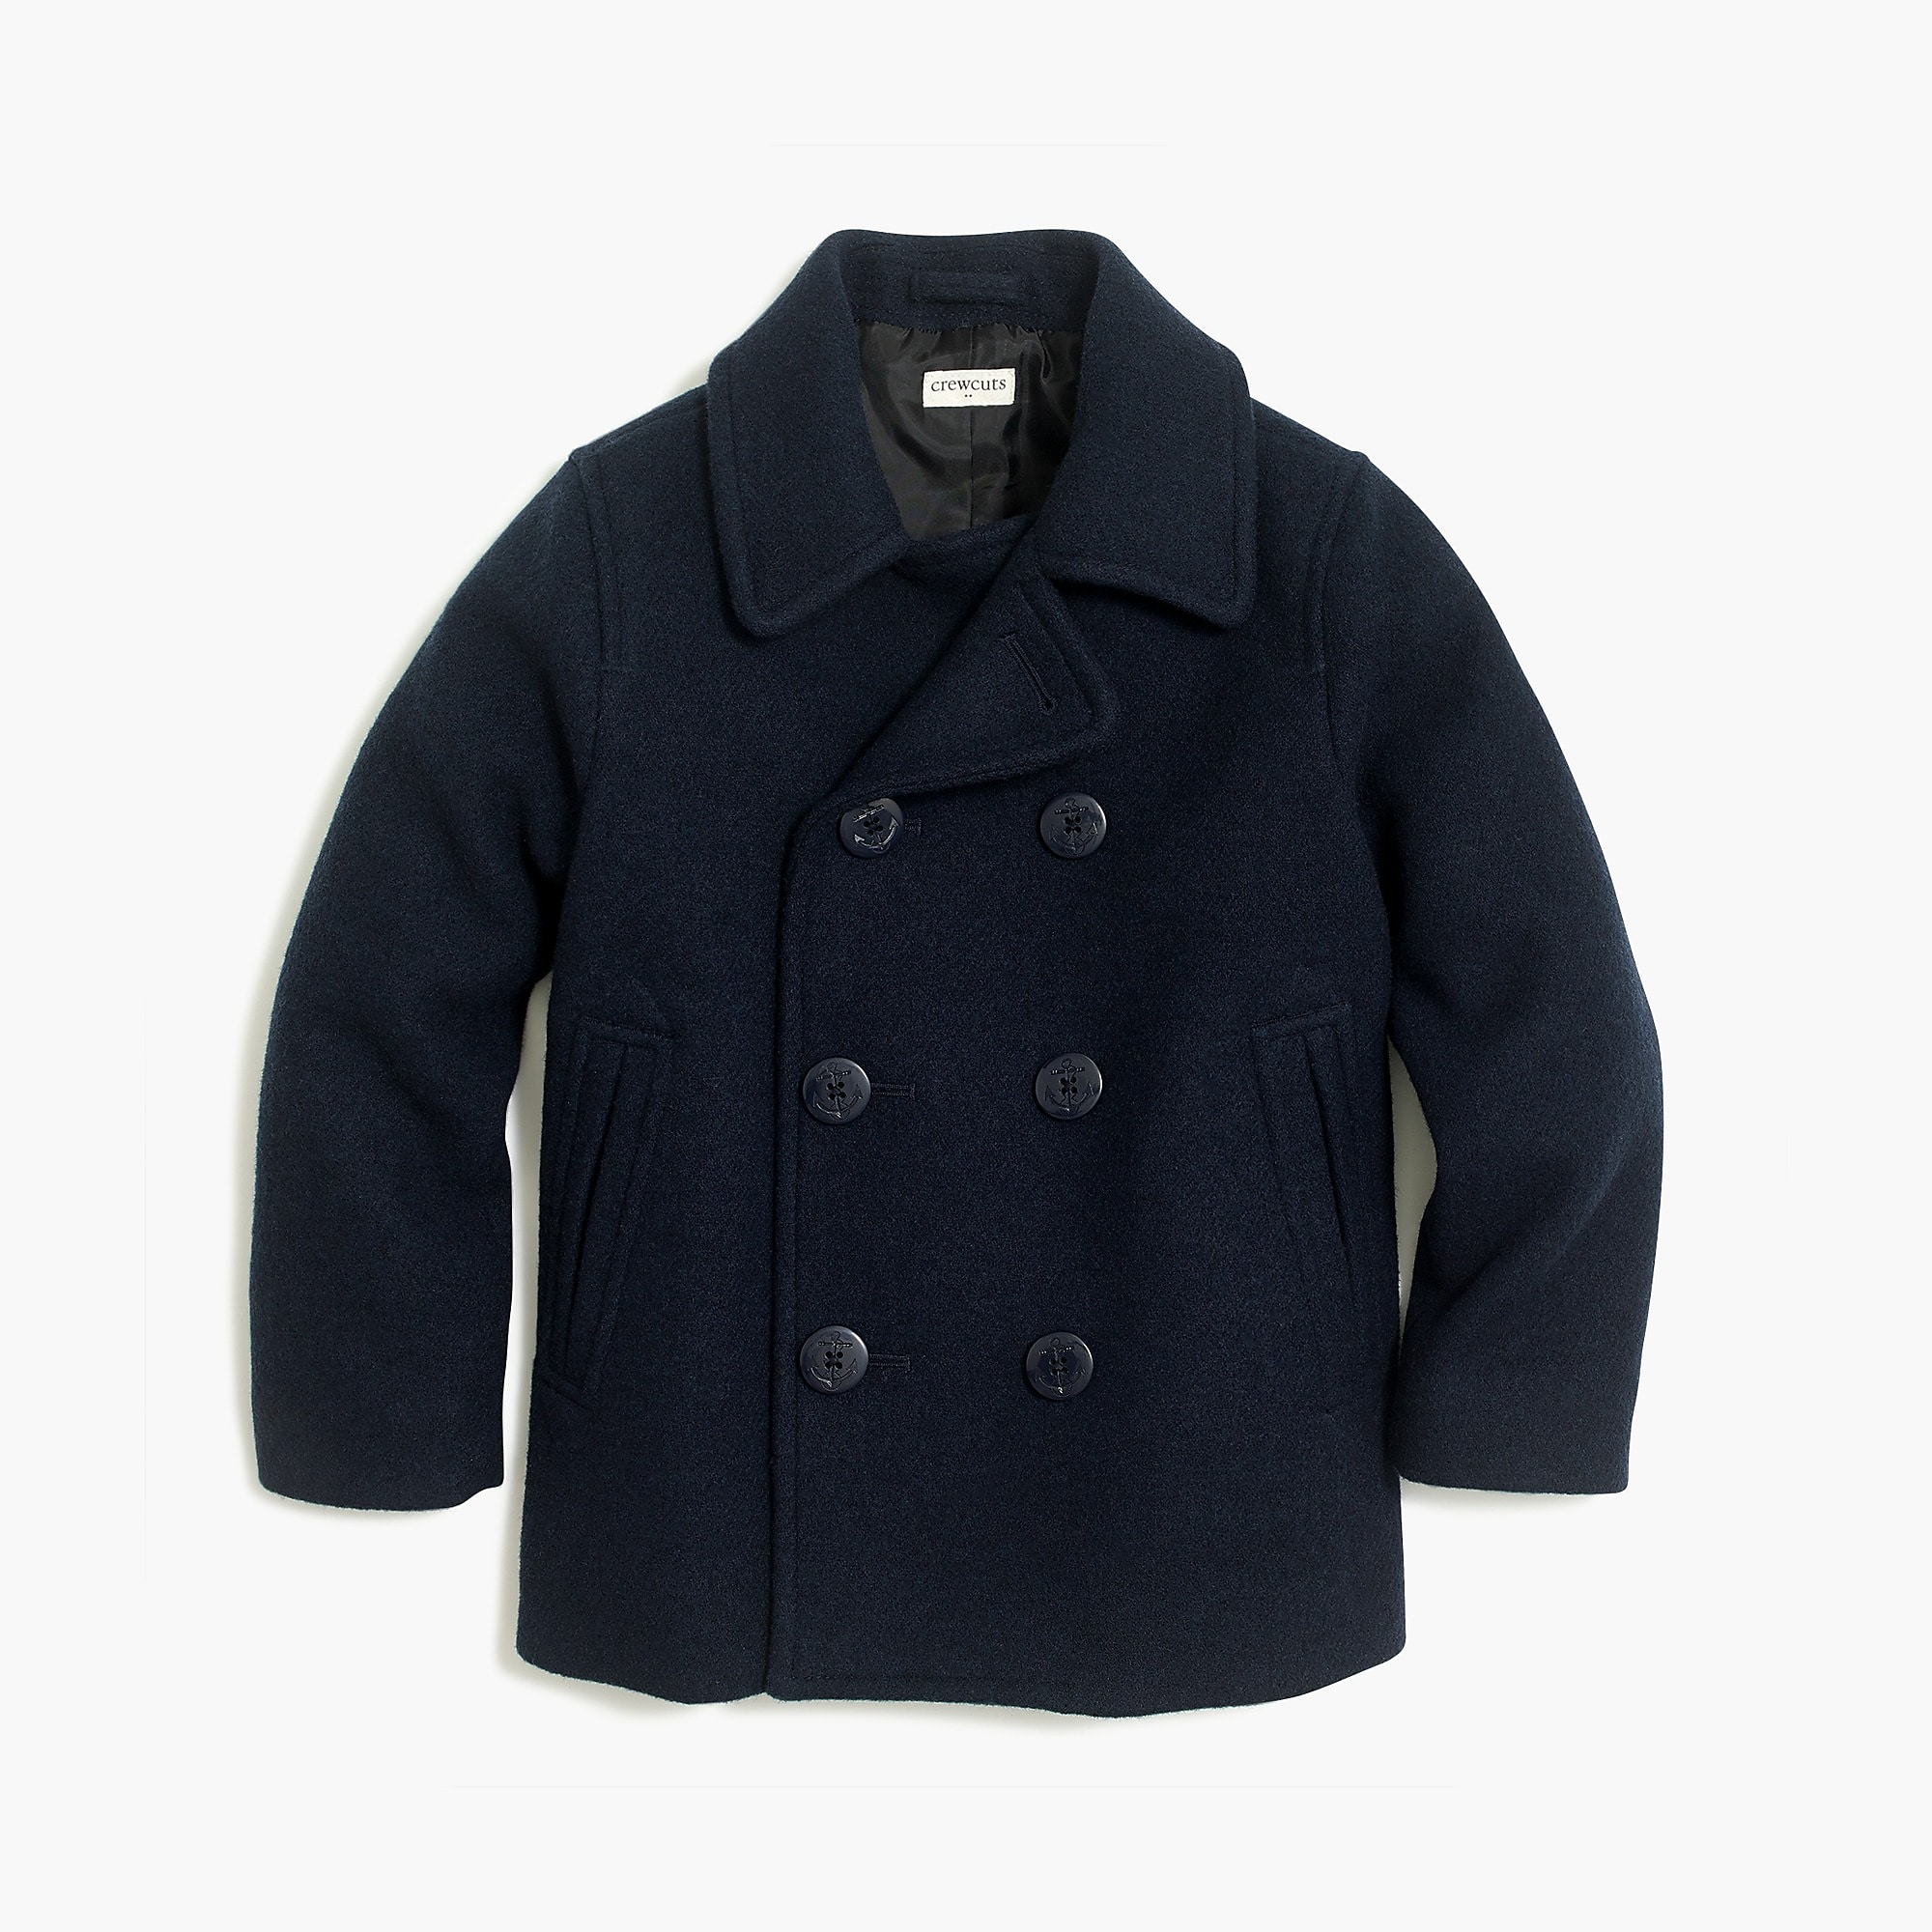 Boys' Peacoat by J.Crew